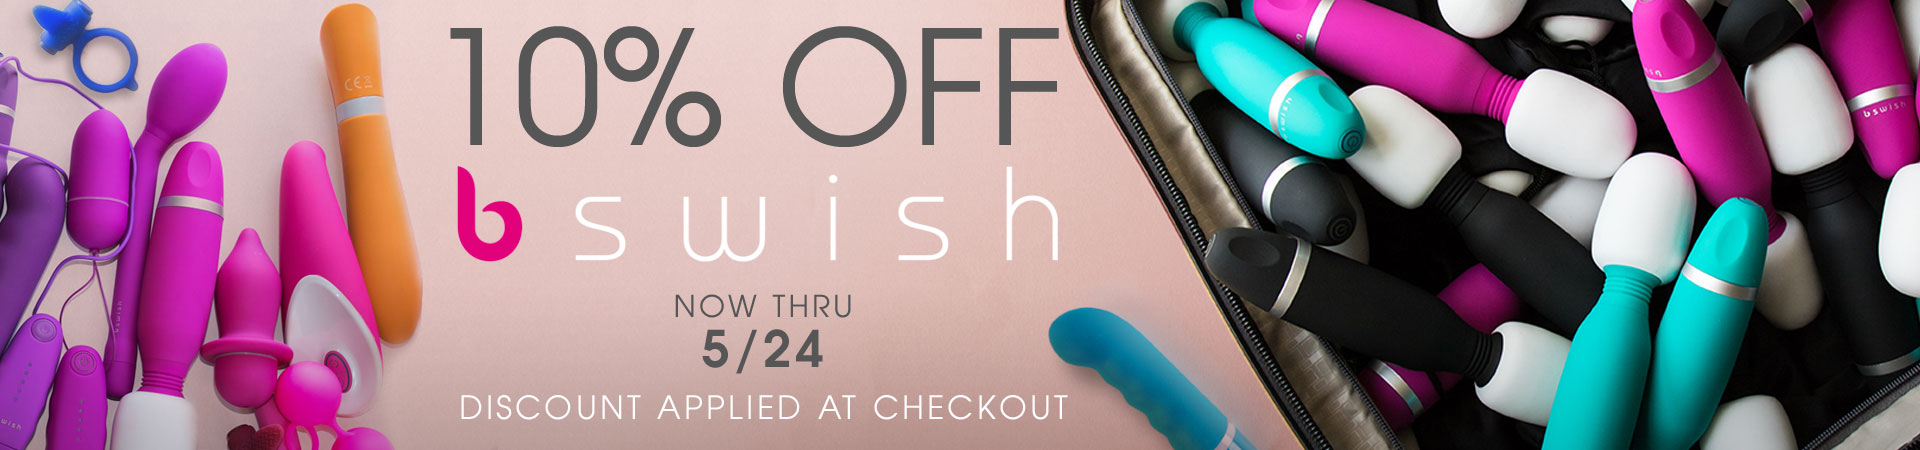 10% Off Pleasure Toys from B Swish! Ends May 24th! Discount Applied At Checkout.